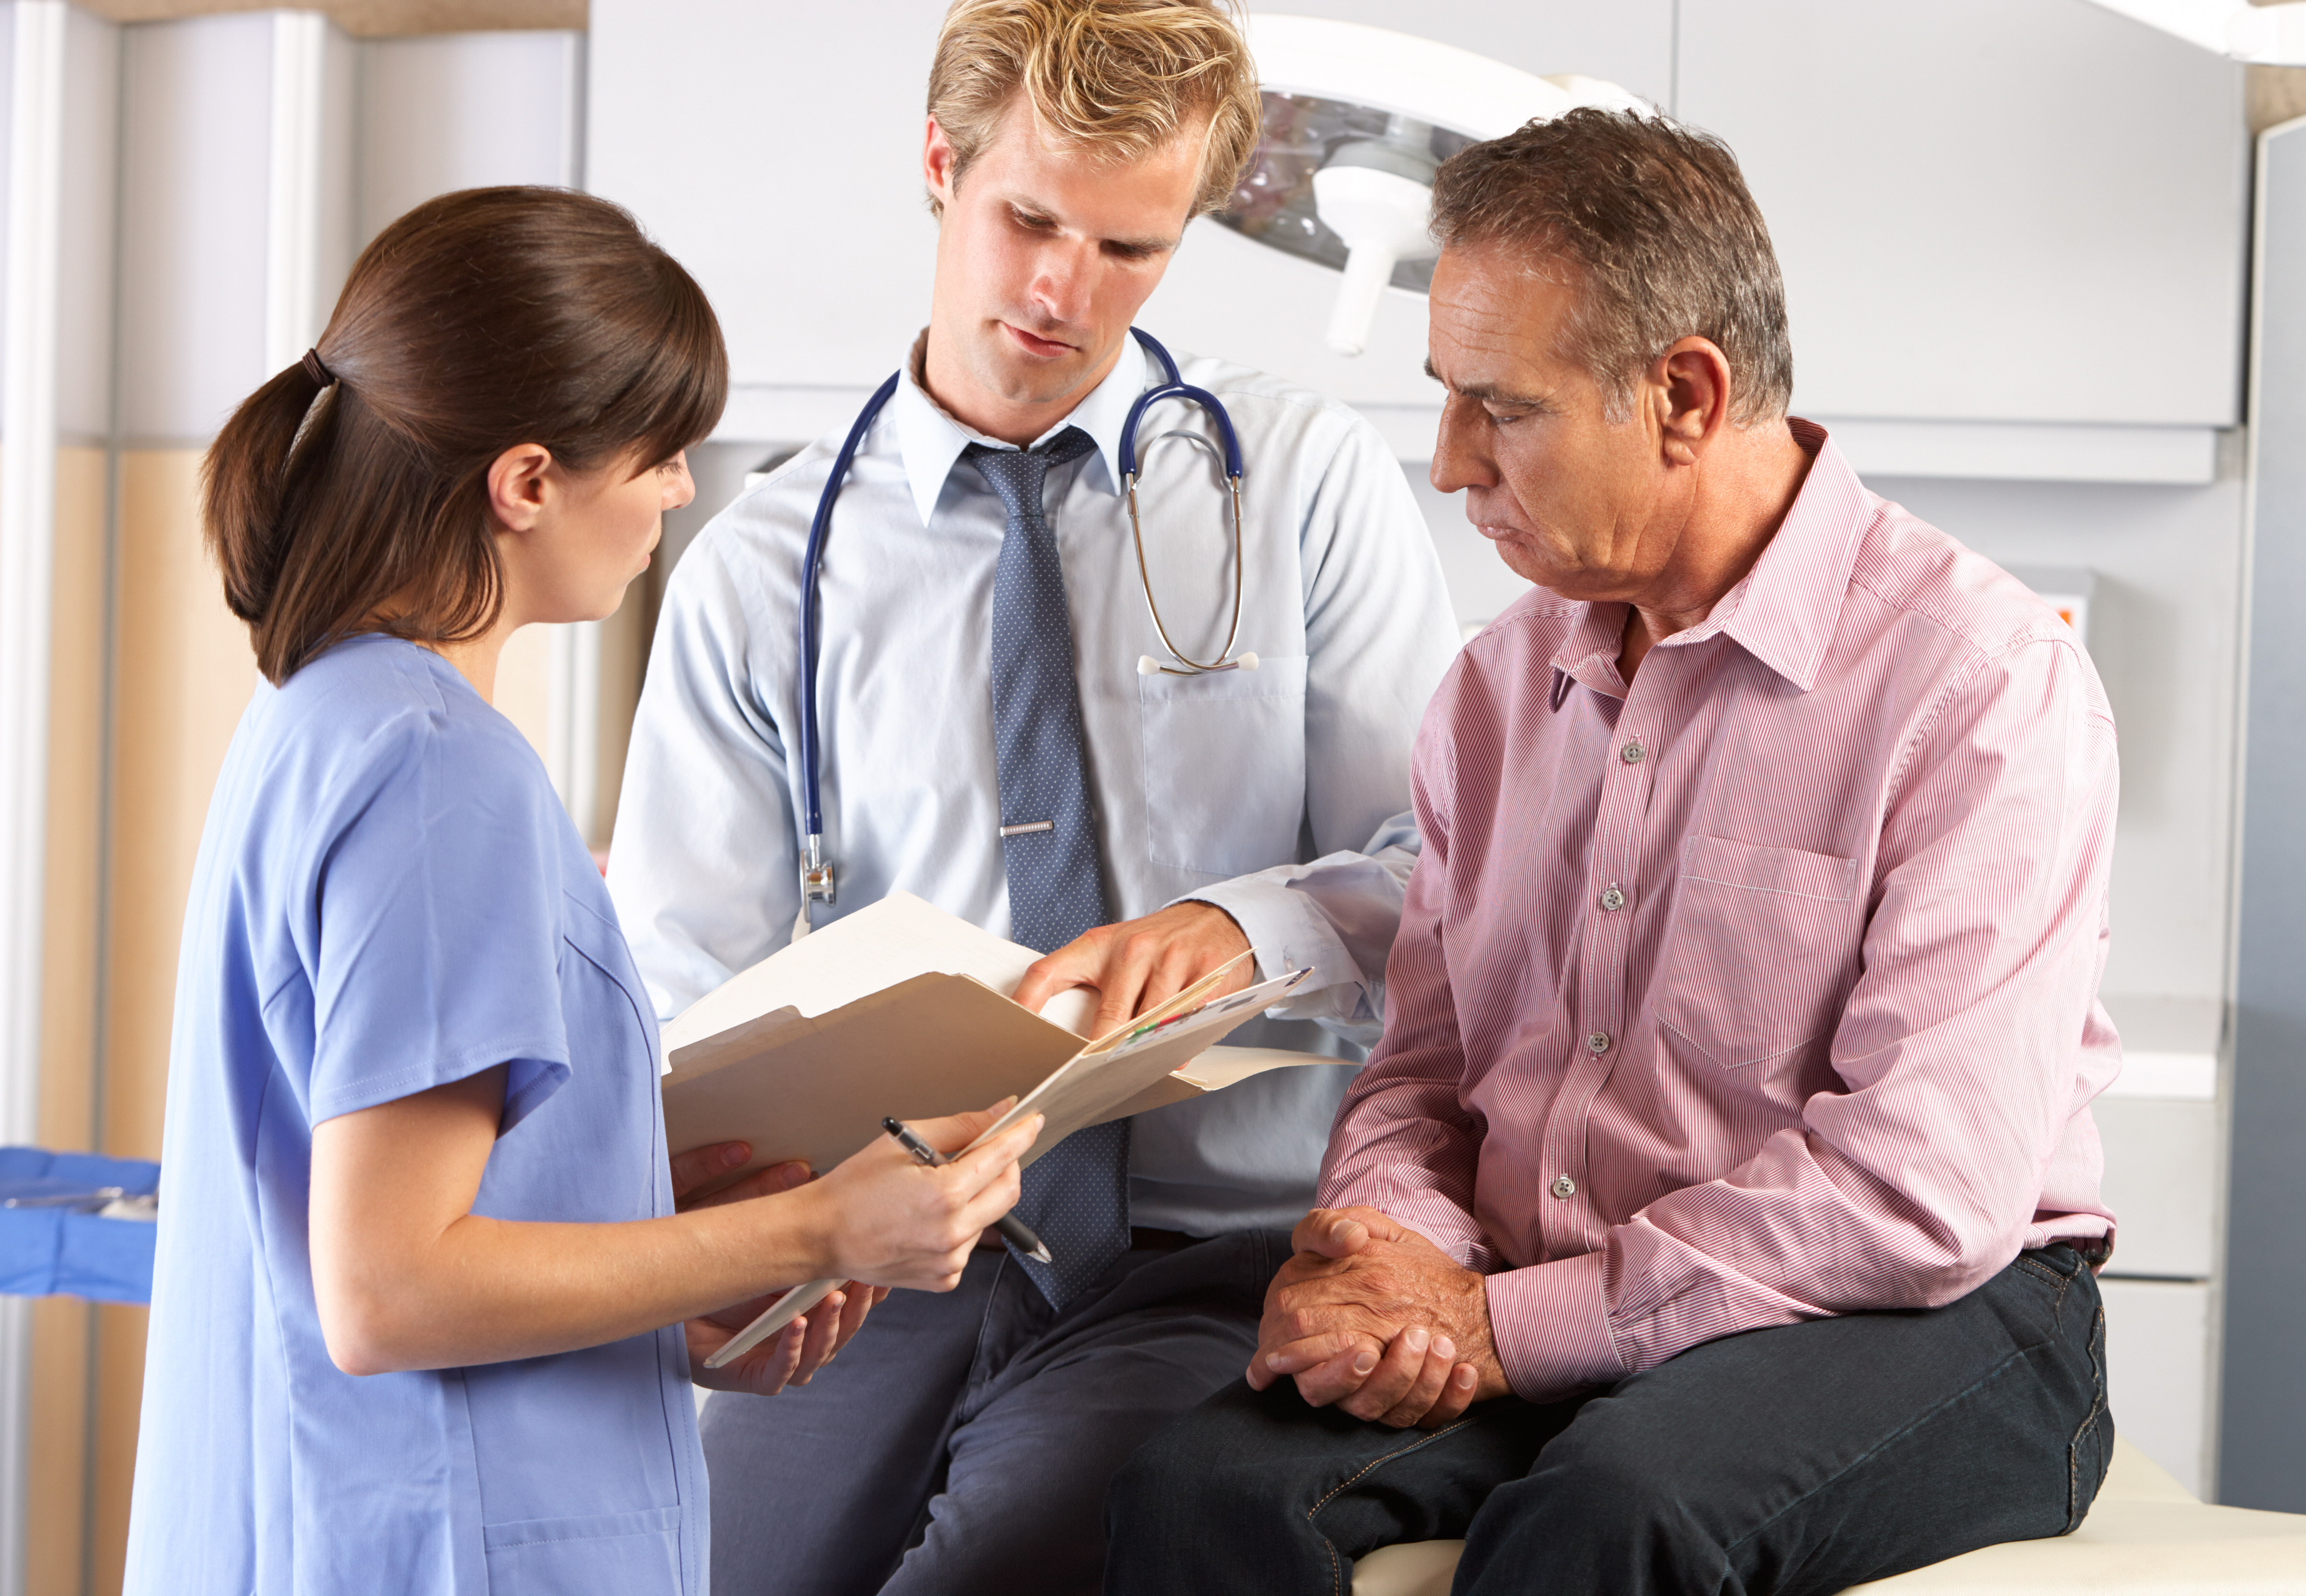 dating sites for medical doctors Dateadaotororg - the best, largest and most successful online dating site for doctor singles or admires to find love and relationship connect with single doctors now.